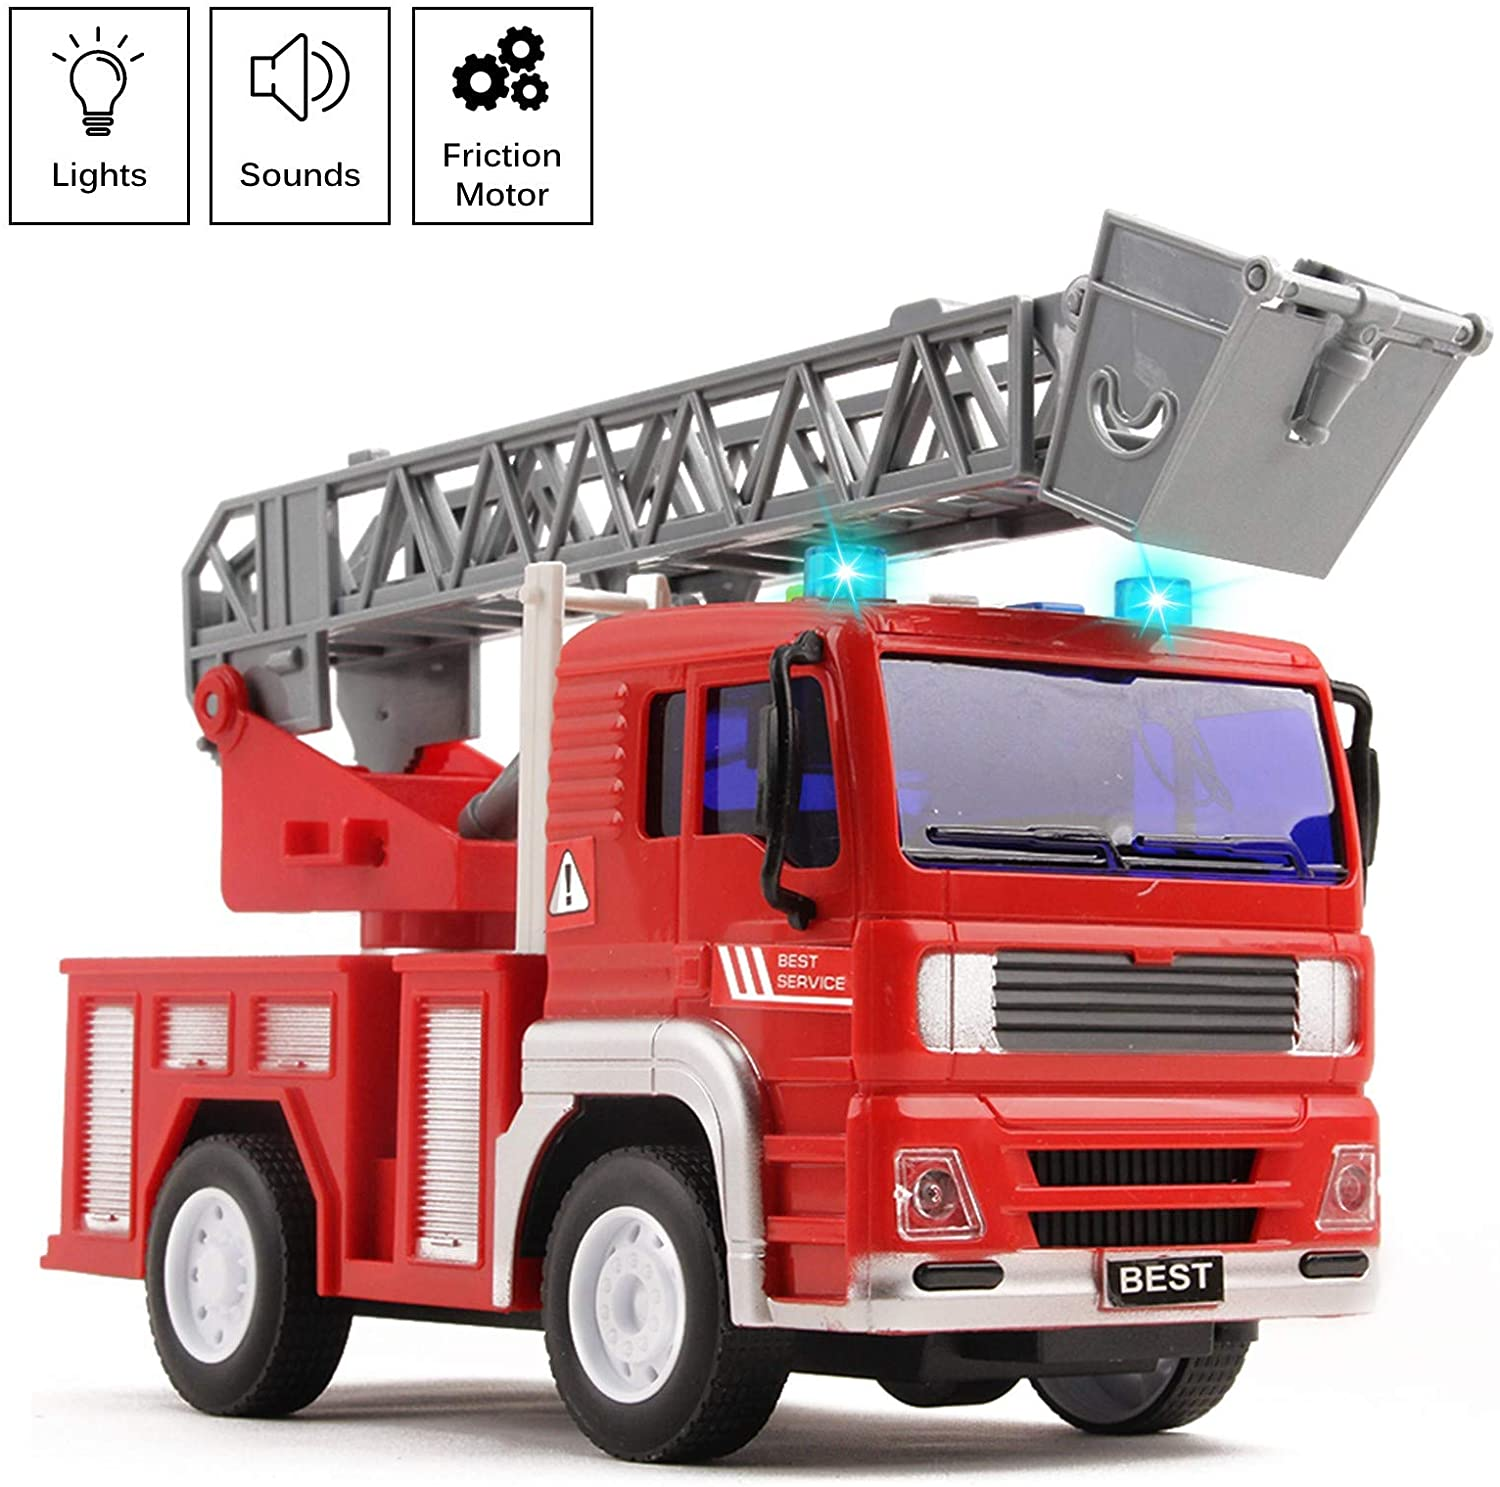 Vokodo Fire Truck Rescue with Lights and Sounds 12.5